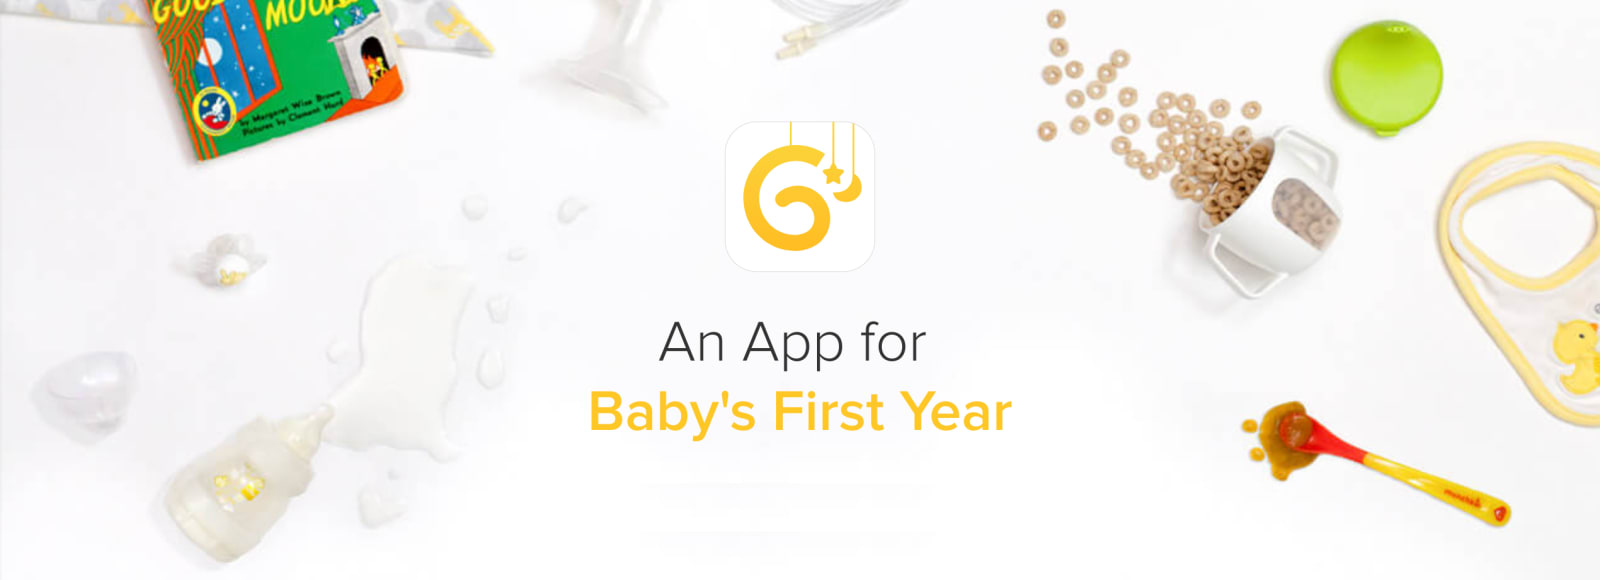 How to track everything your baby does